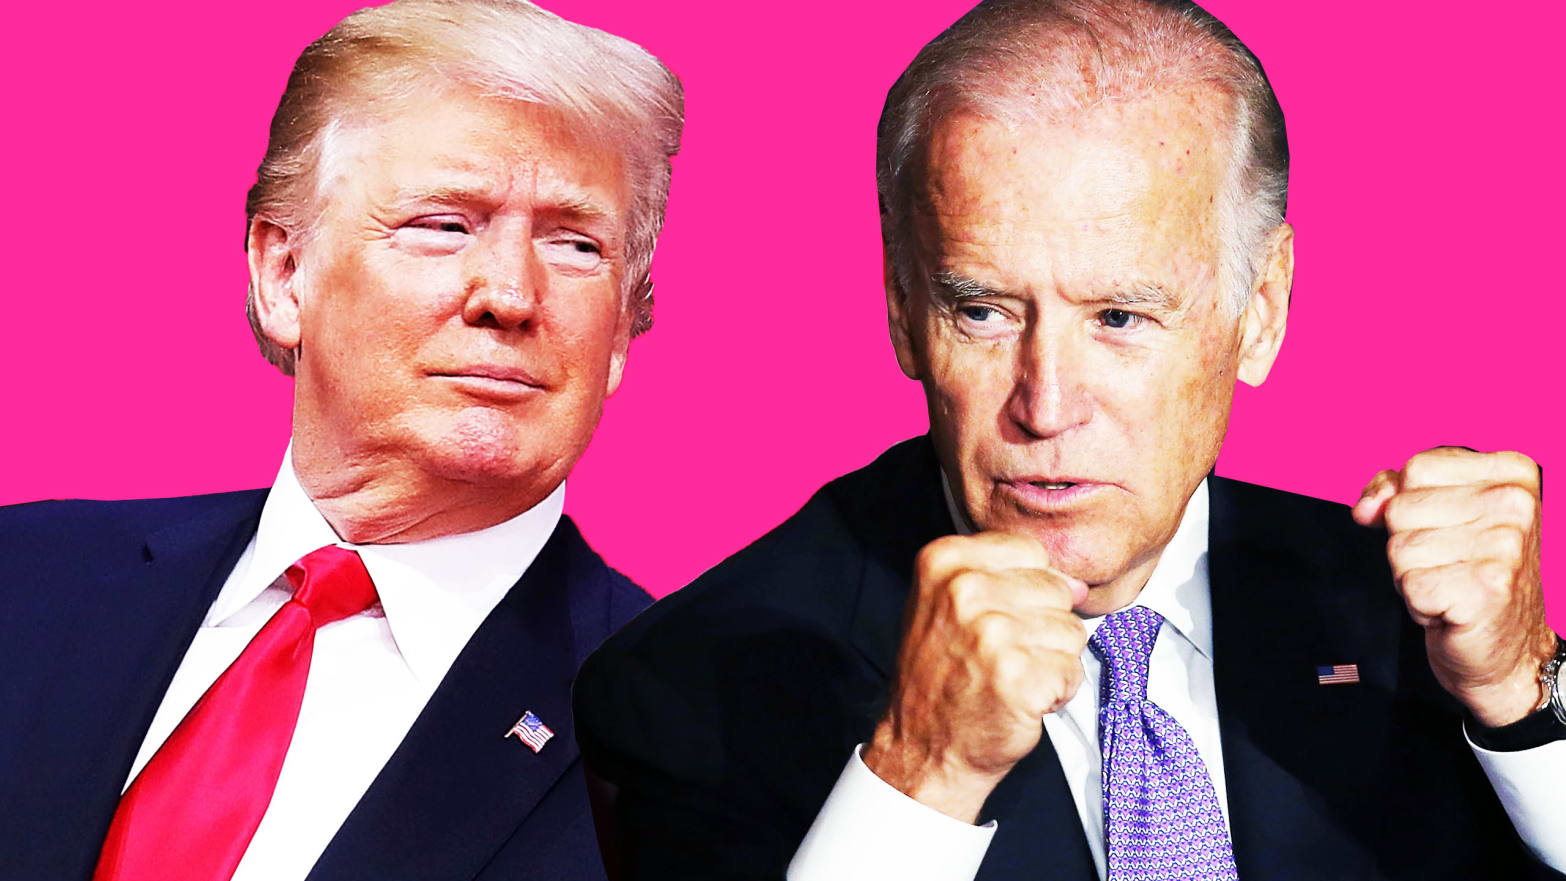 Joe Biden: I'd Have 'Beat the Hell' Out of Trump in High School ...